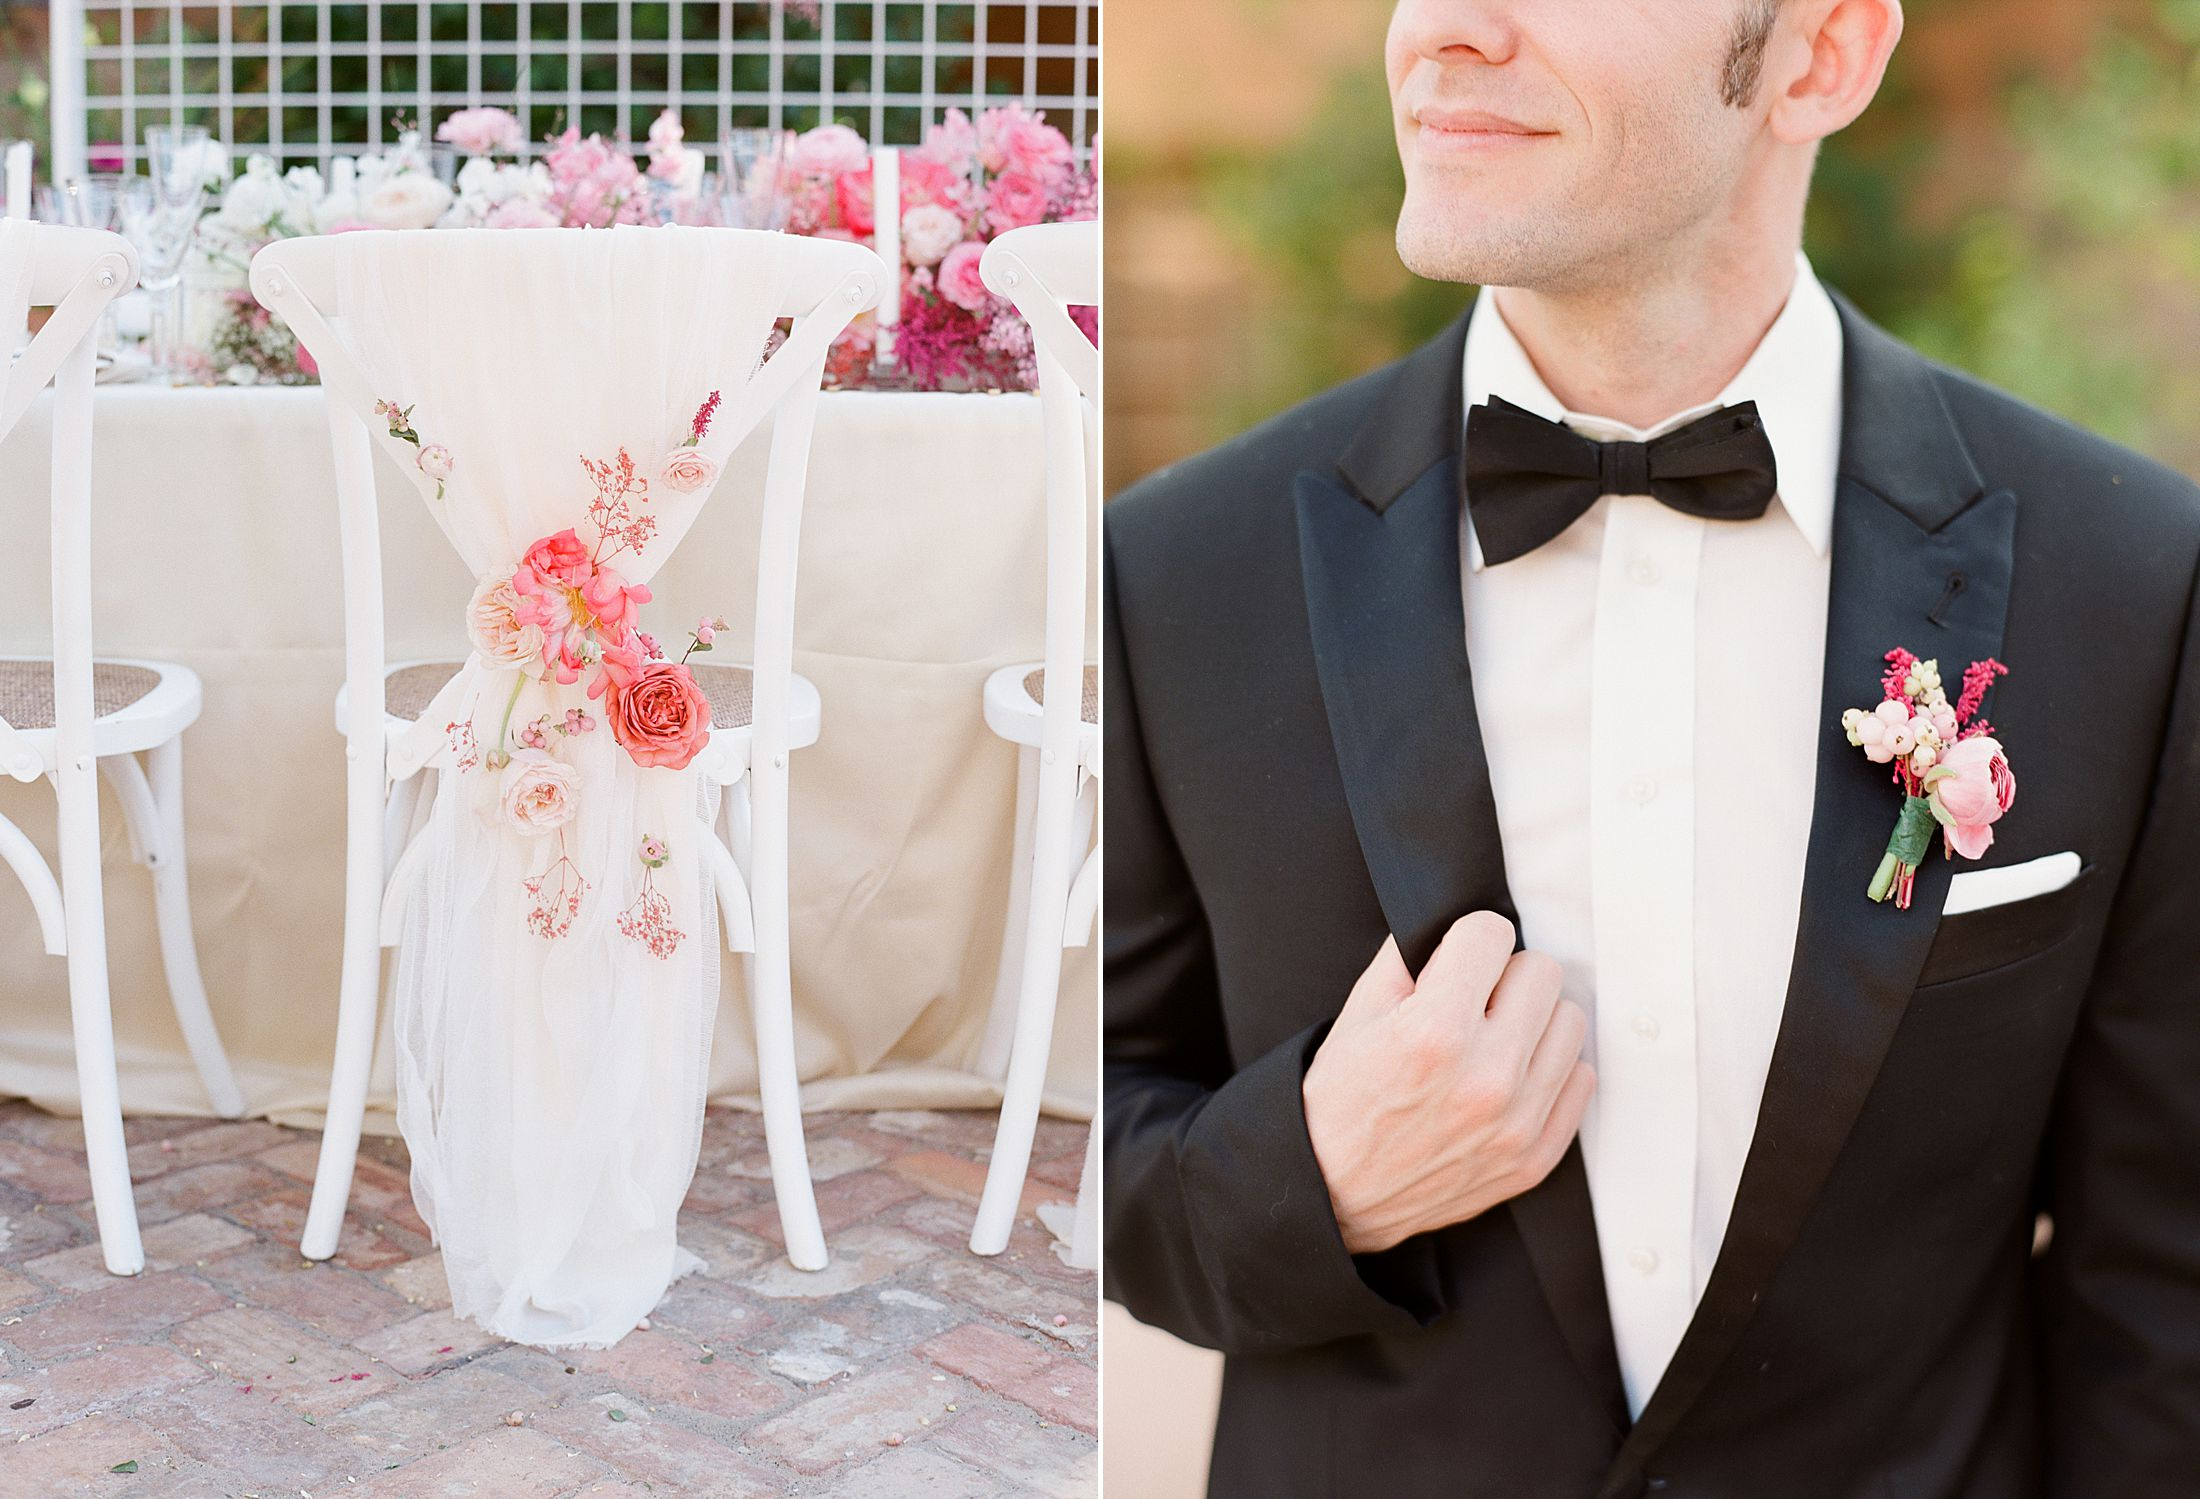 Pink Ombre Wedding Inspiration on Style Me Pretty - Royal Palms Wedding - Scottsdale Wedding - Ashley Baumgartner - Bloom and Blueprint - Wedding Puppies - Bulldog Puppies_0004.jpg